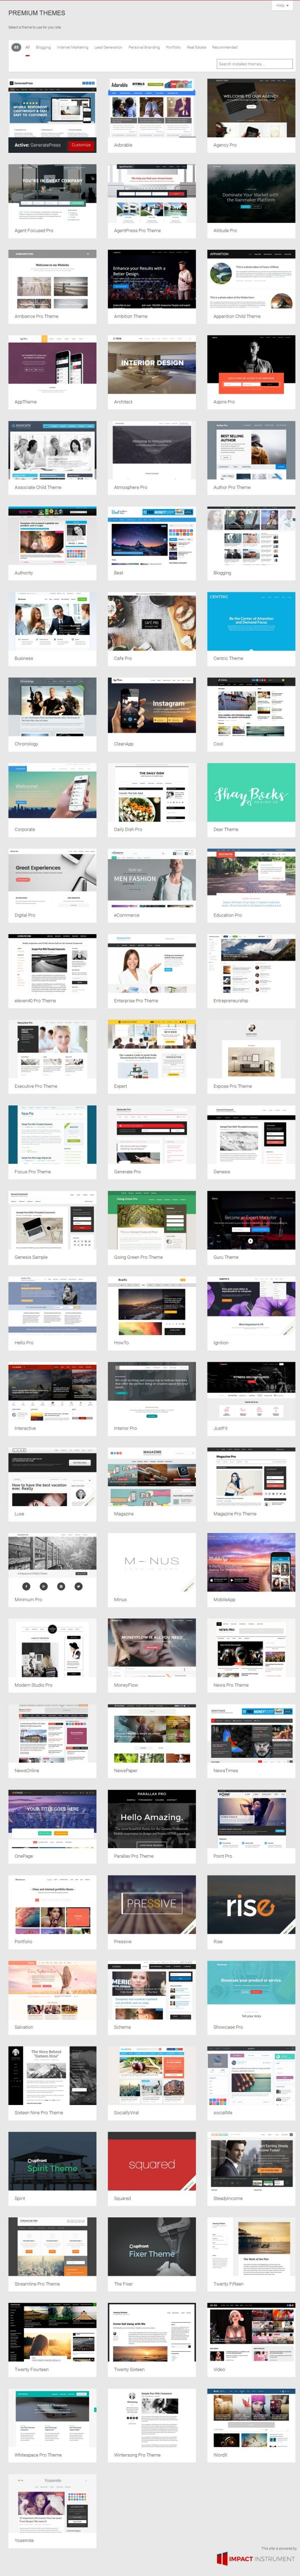 Impact Instrument Screenshot of 85 Premium WordPress Themes